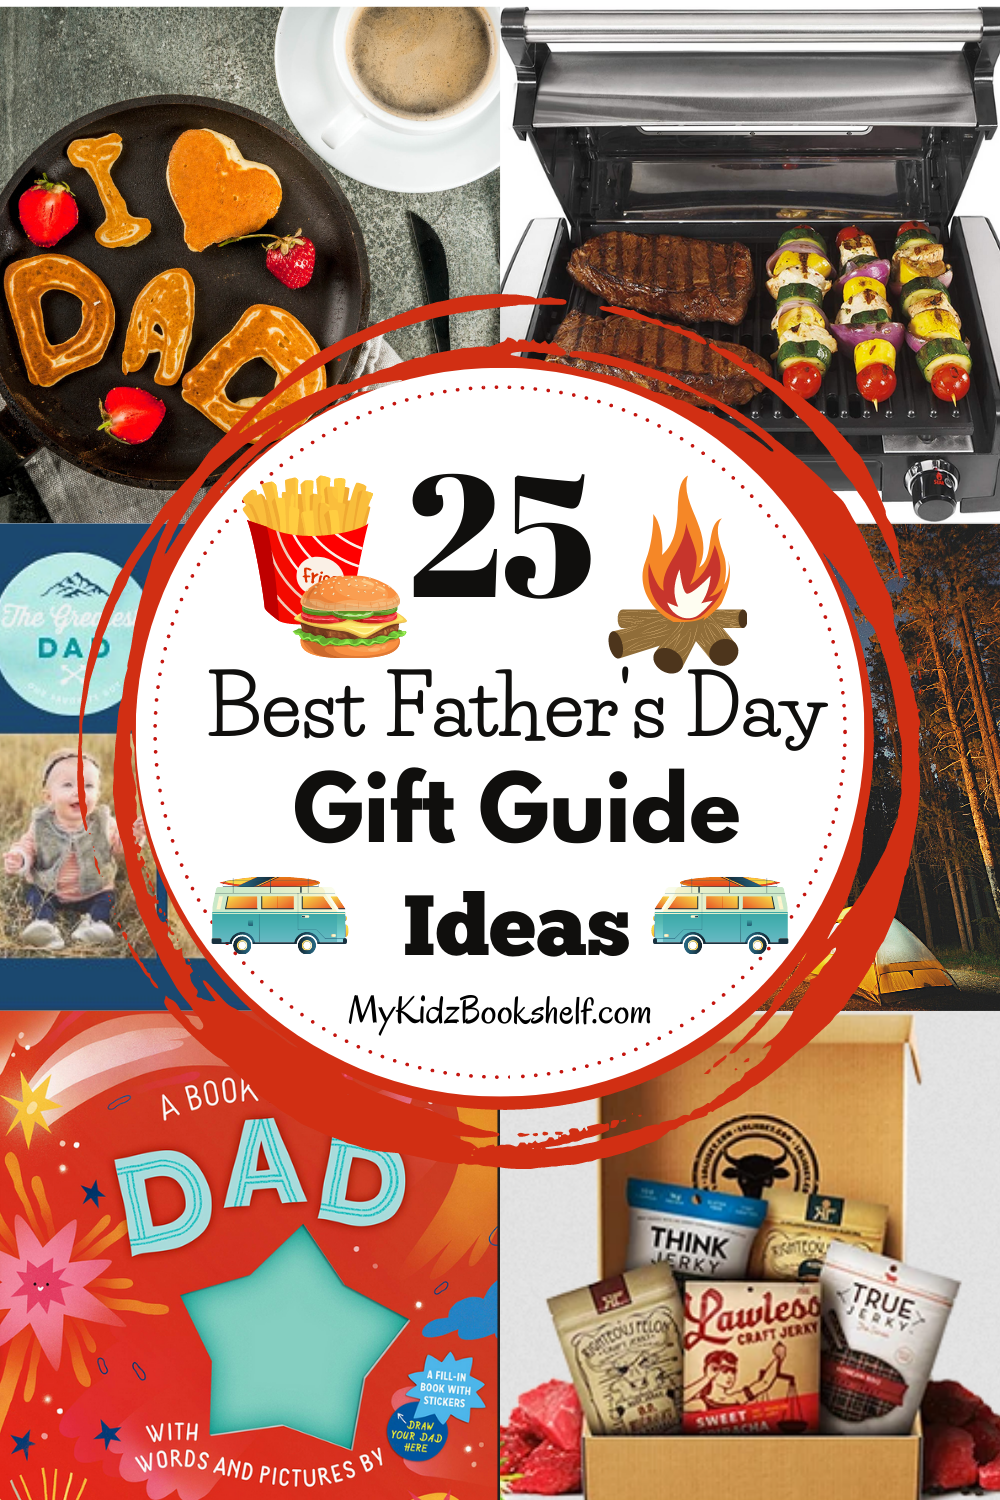 Pinterest Pin 25 Best Father's Day Gift Guide Ideas Gifts for Guys special men in your life